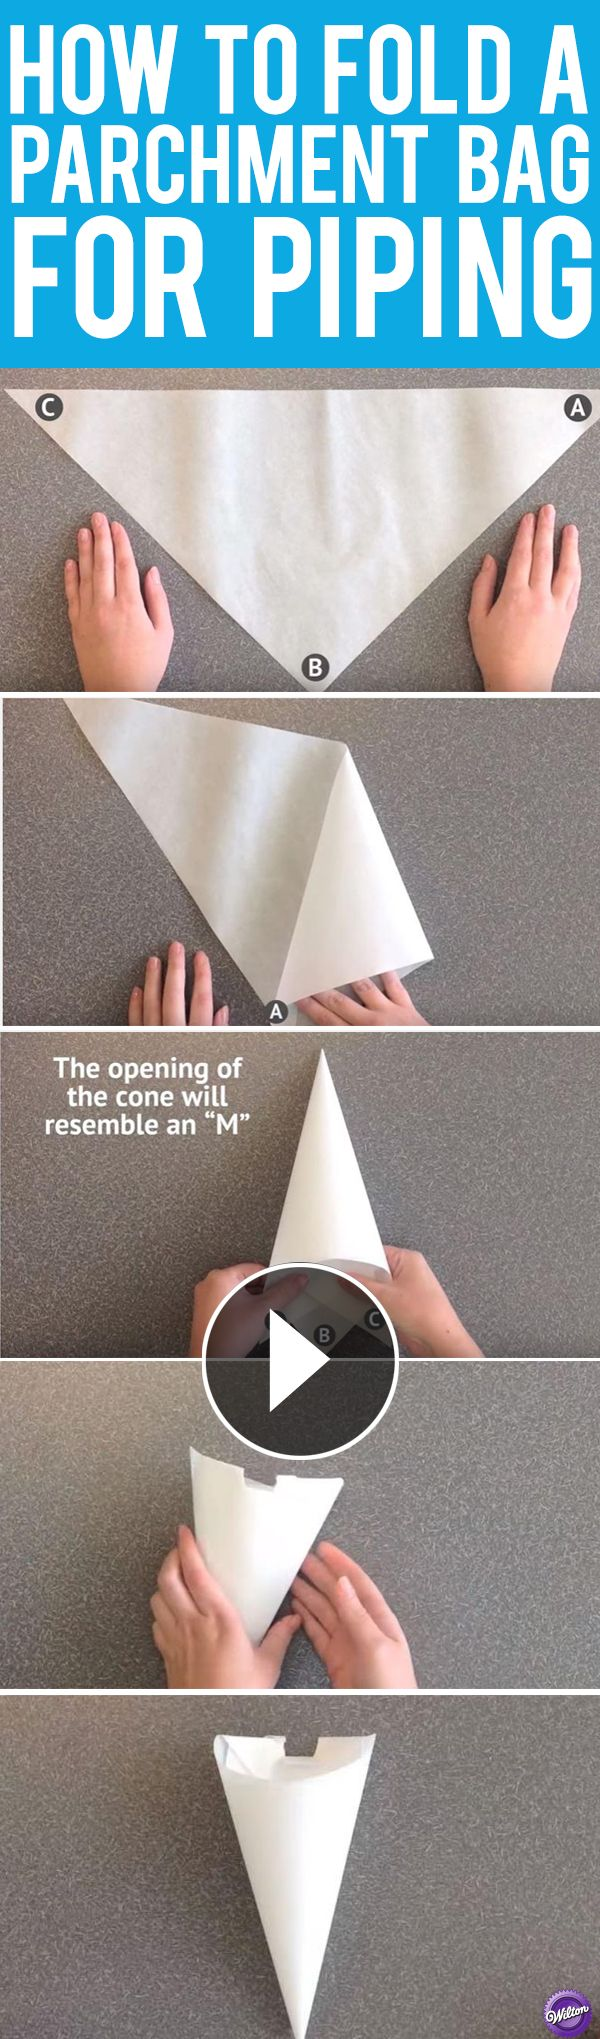 Learn How to Fold a Parchment Bag for Piping  Cake decorating